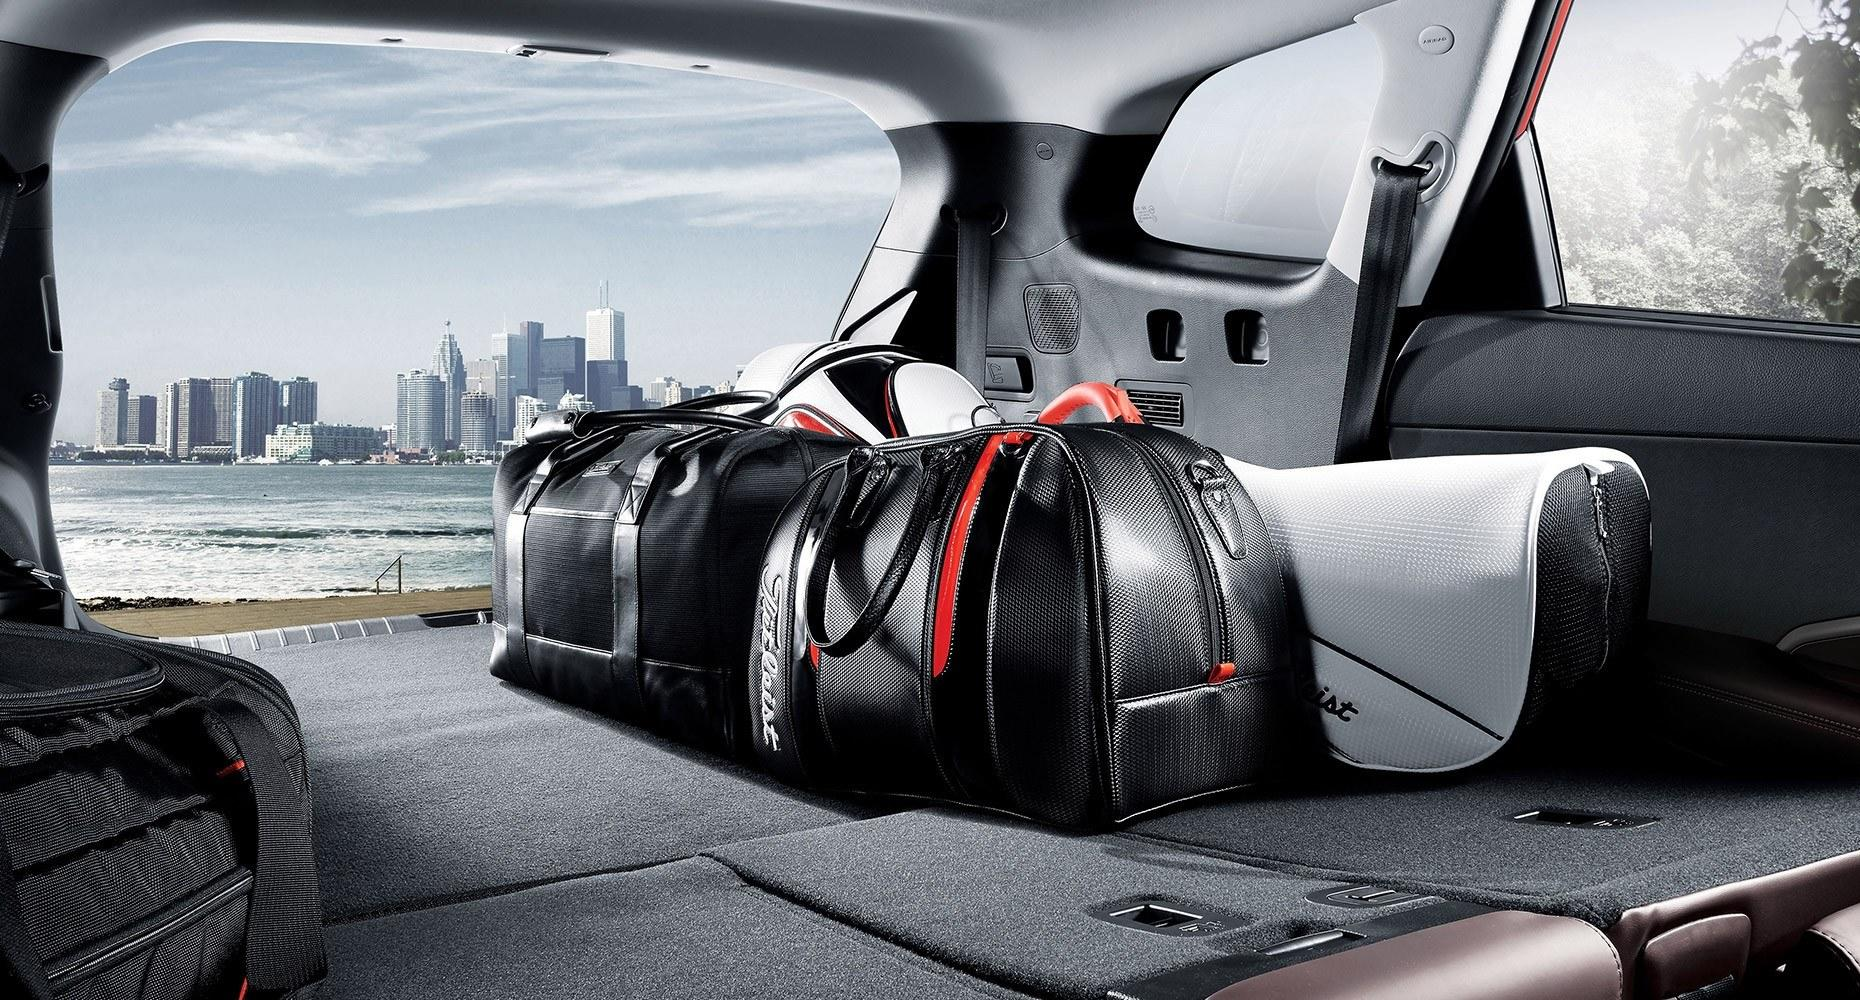 An interior shot of a Hyundai SUV, looking through the open rear door at a city skyline across a river. Some bags are stowed on top of folded-down rear seats.